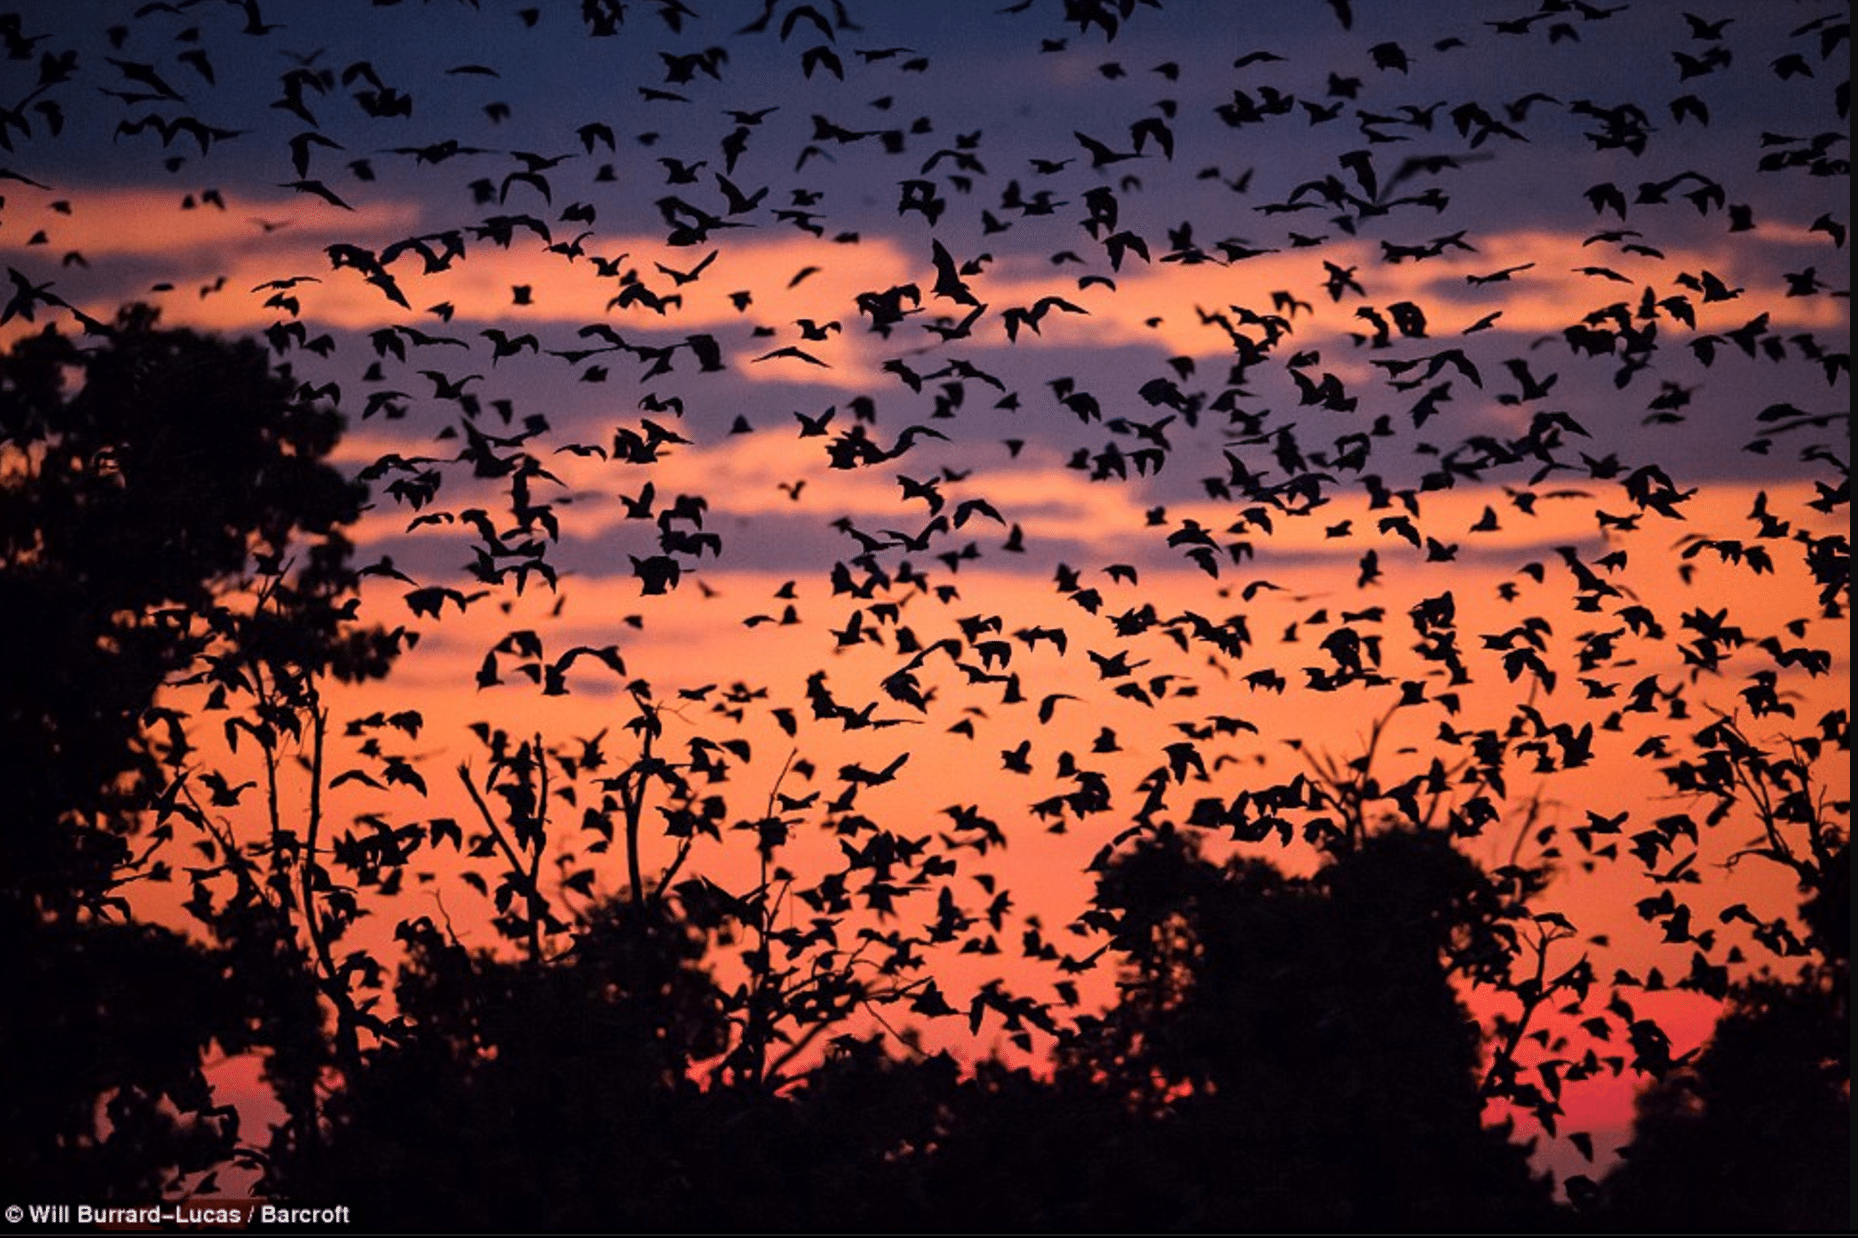 5 Amazing Lesser-Known African Wonders On My Must-See List- Fruit bat migration